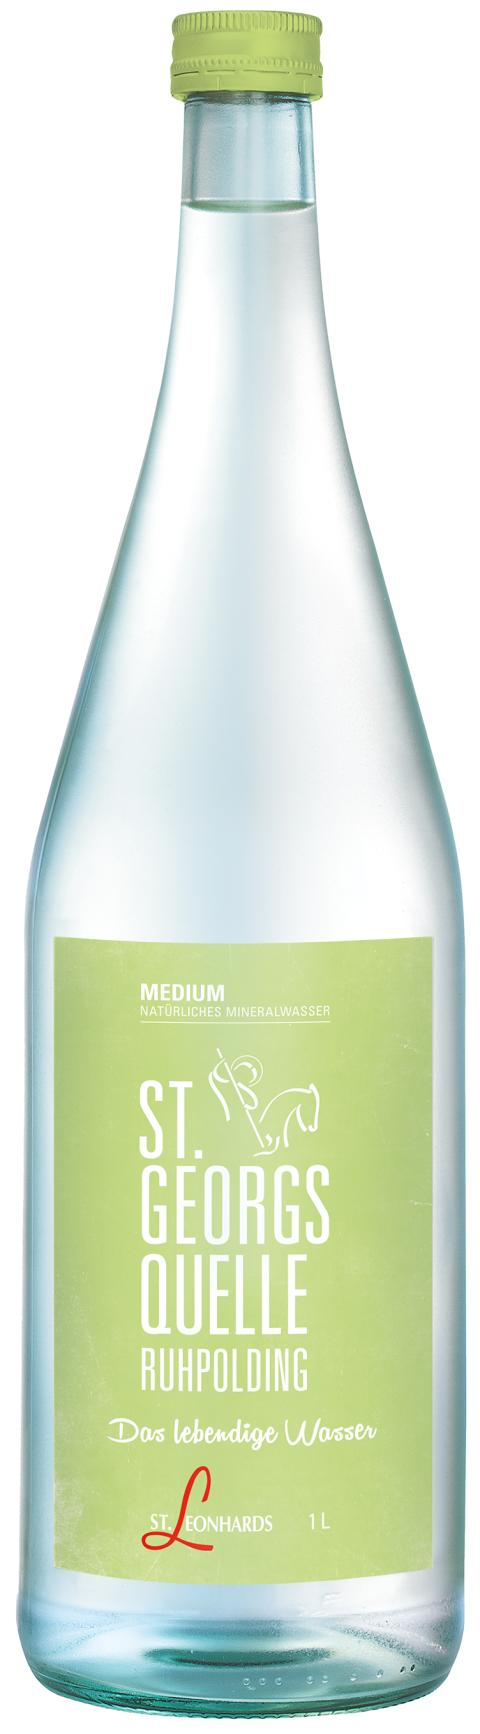 St. Georgsquelle-medium 1 L